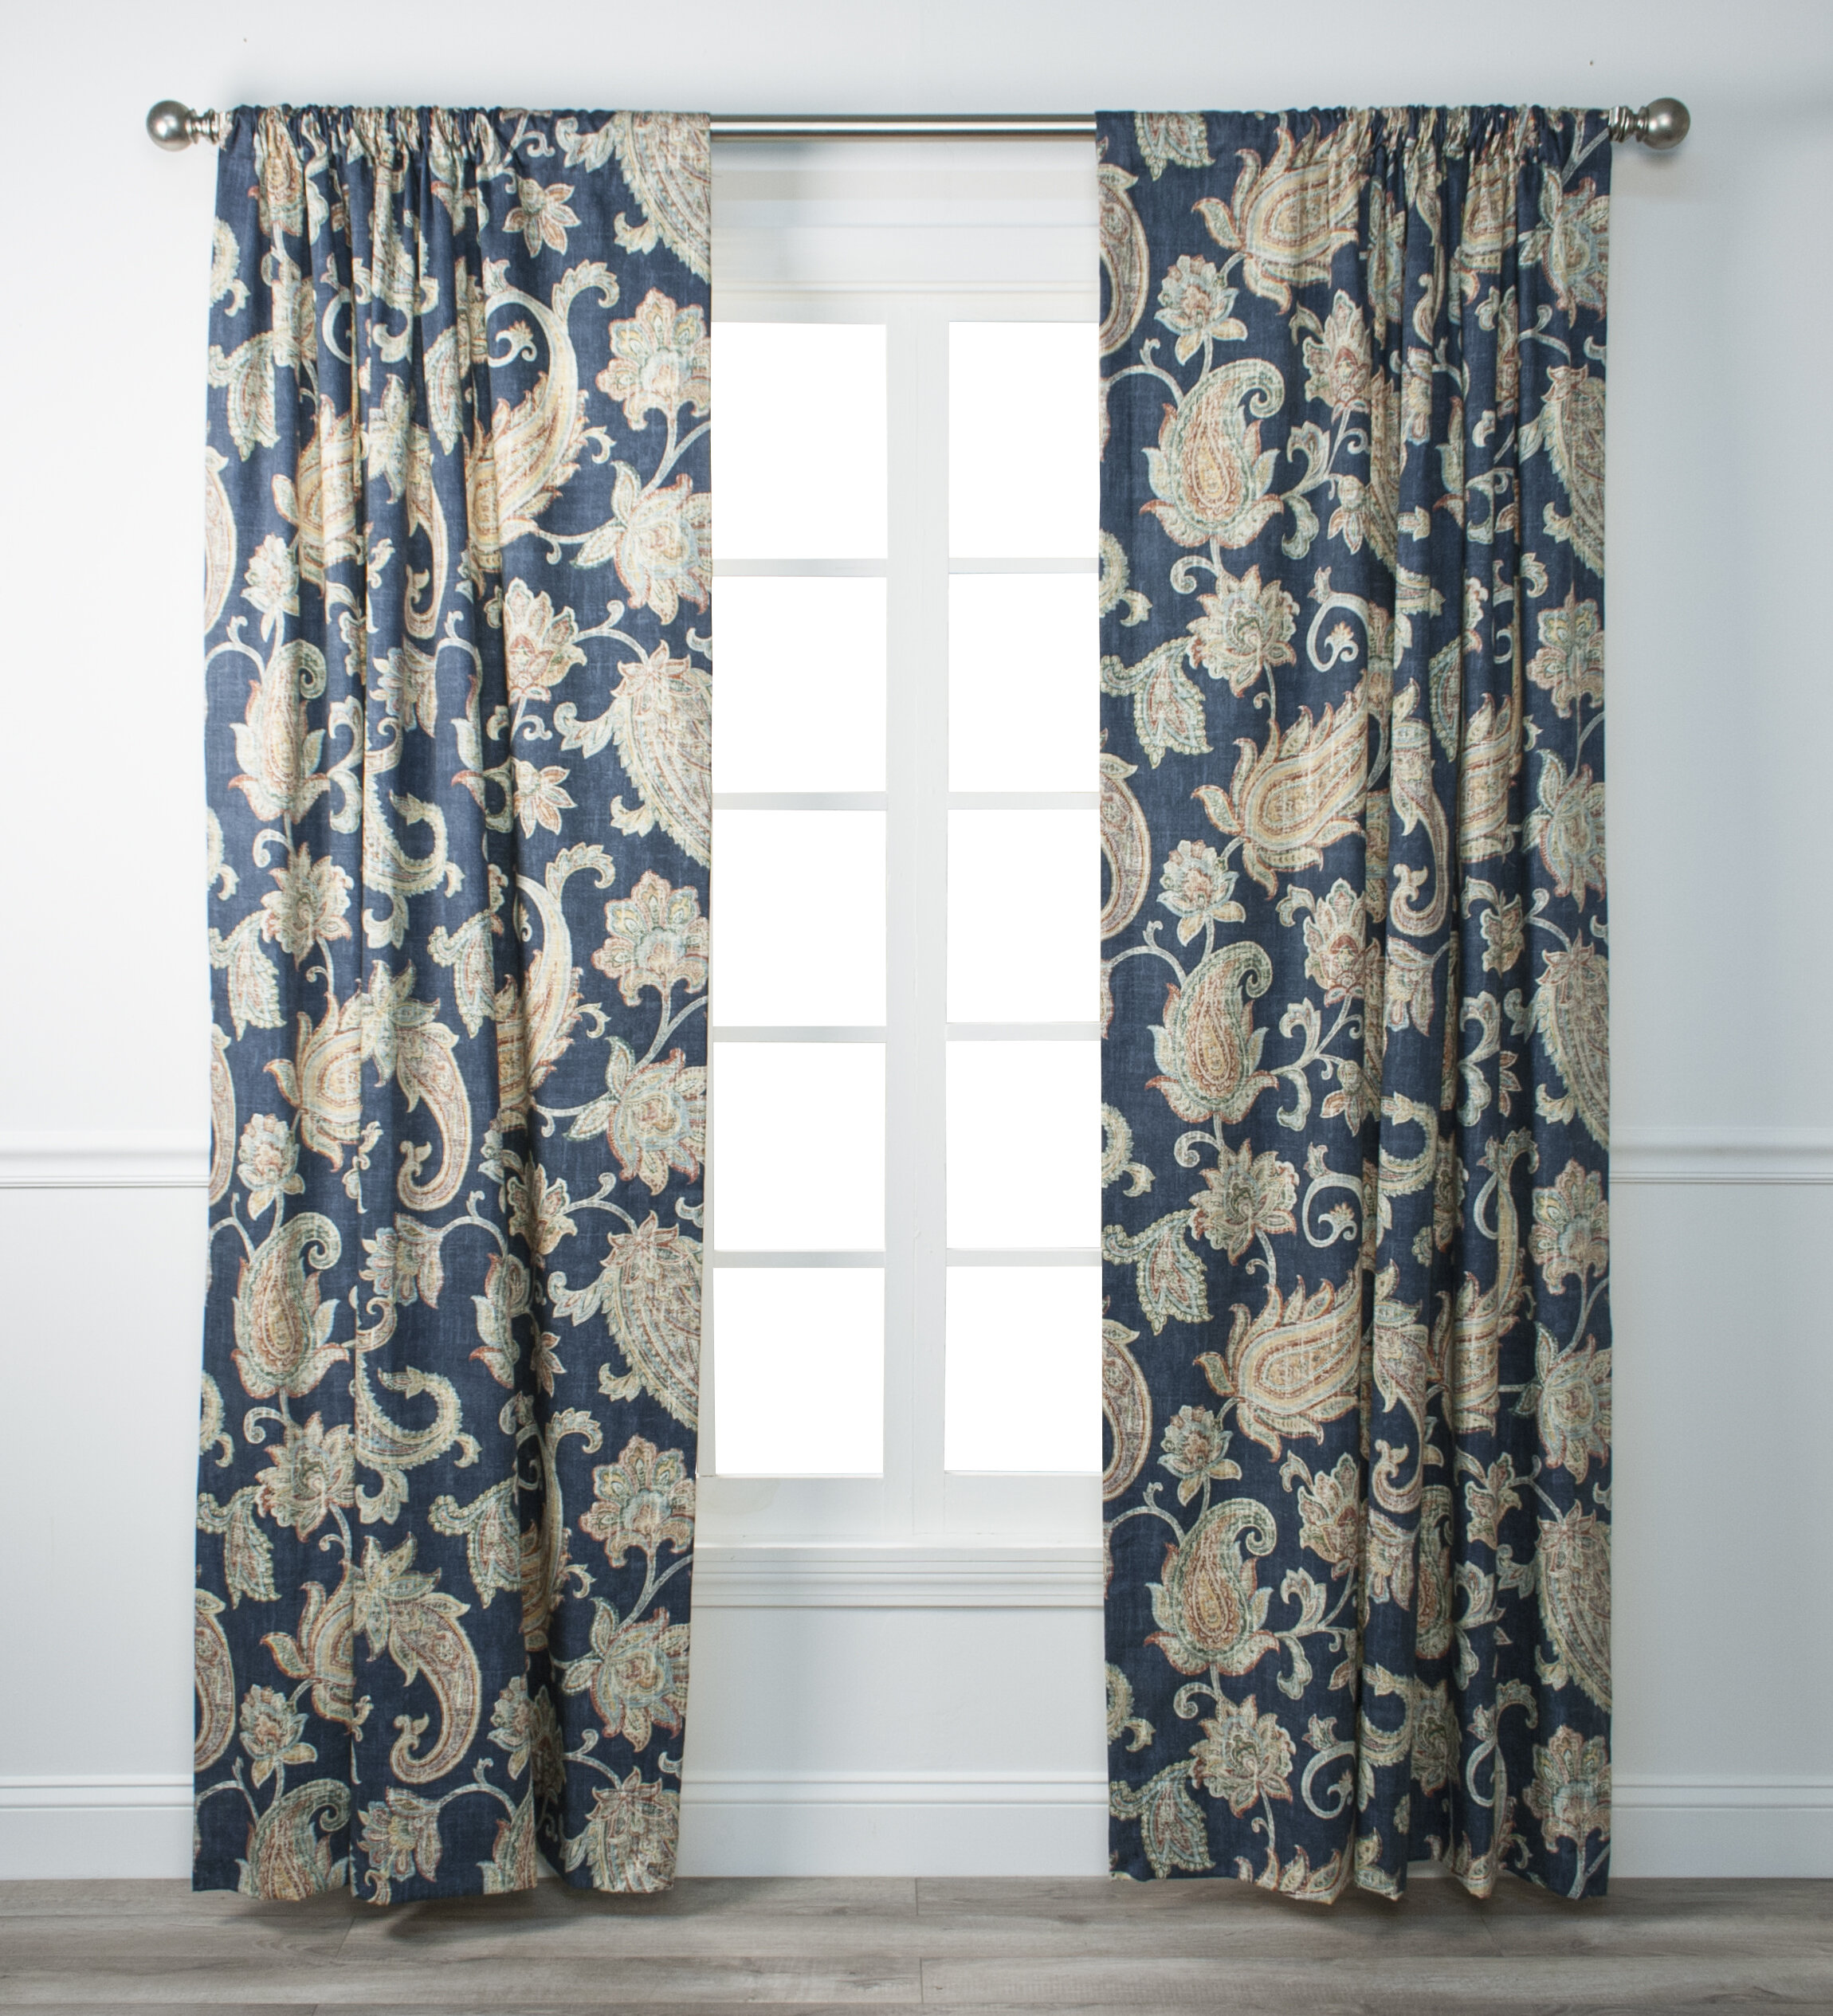 Darby Home Co Gaener Paisley Semi Sheer Rod Pocket Curtains Drapes Wayfair